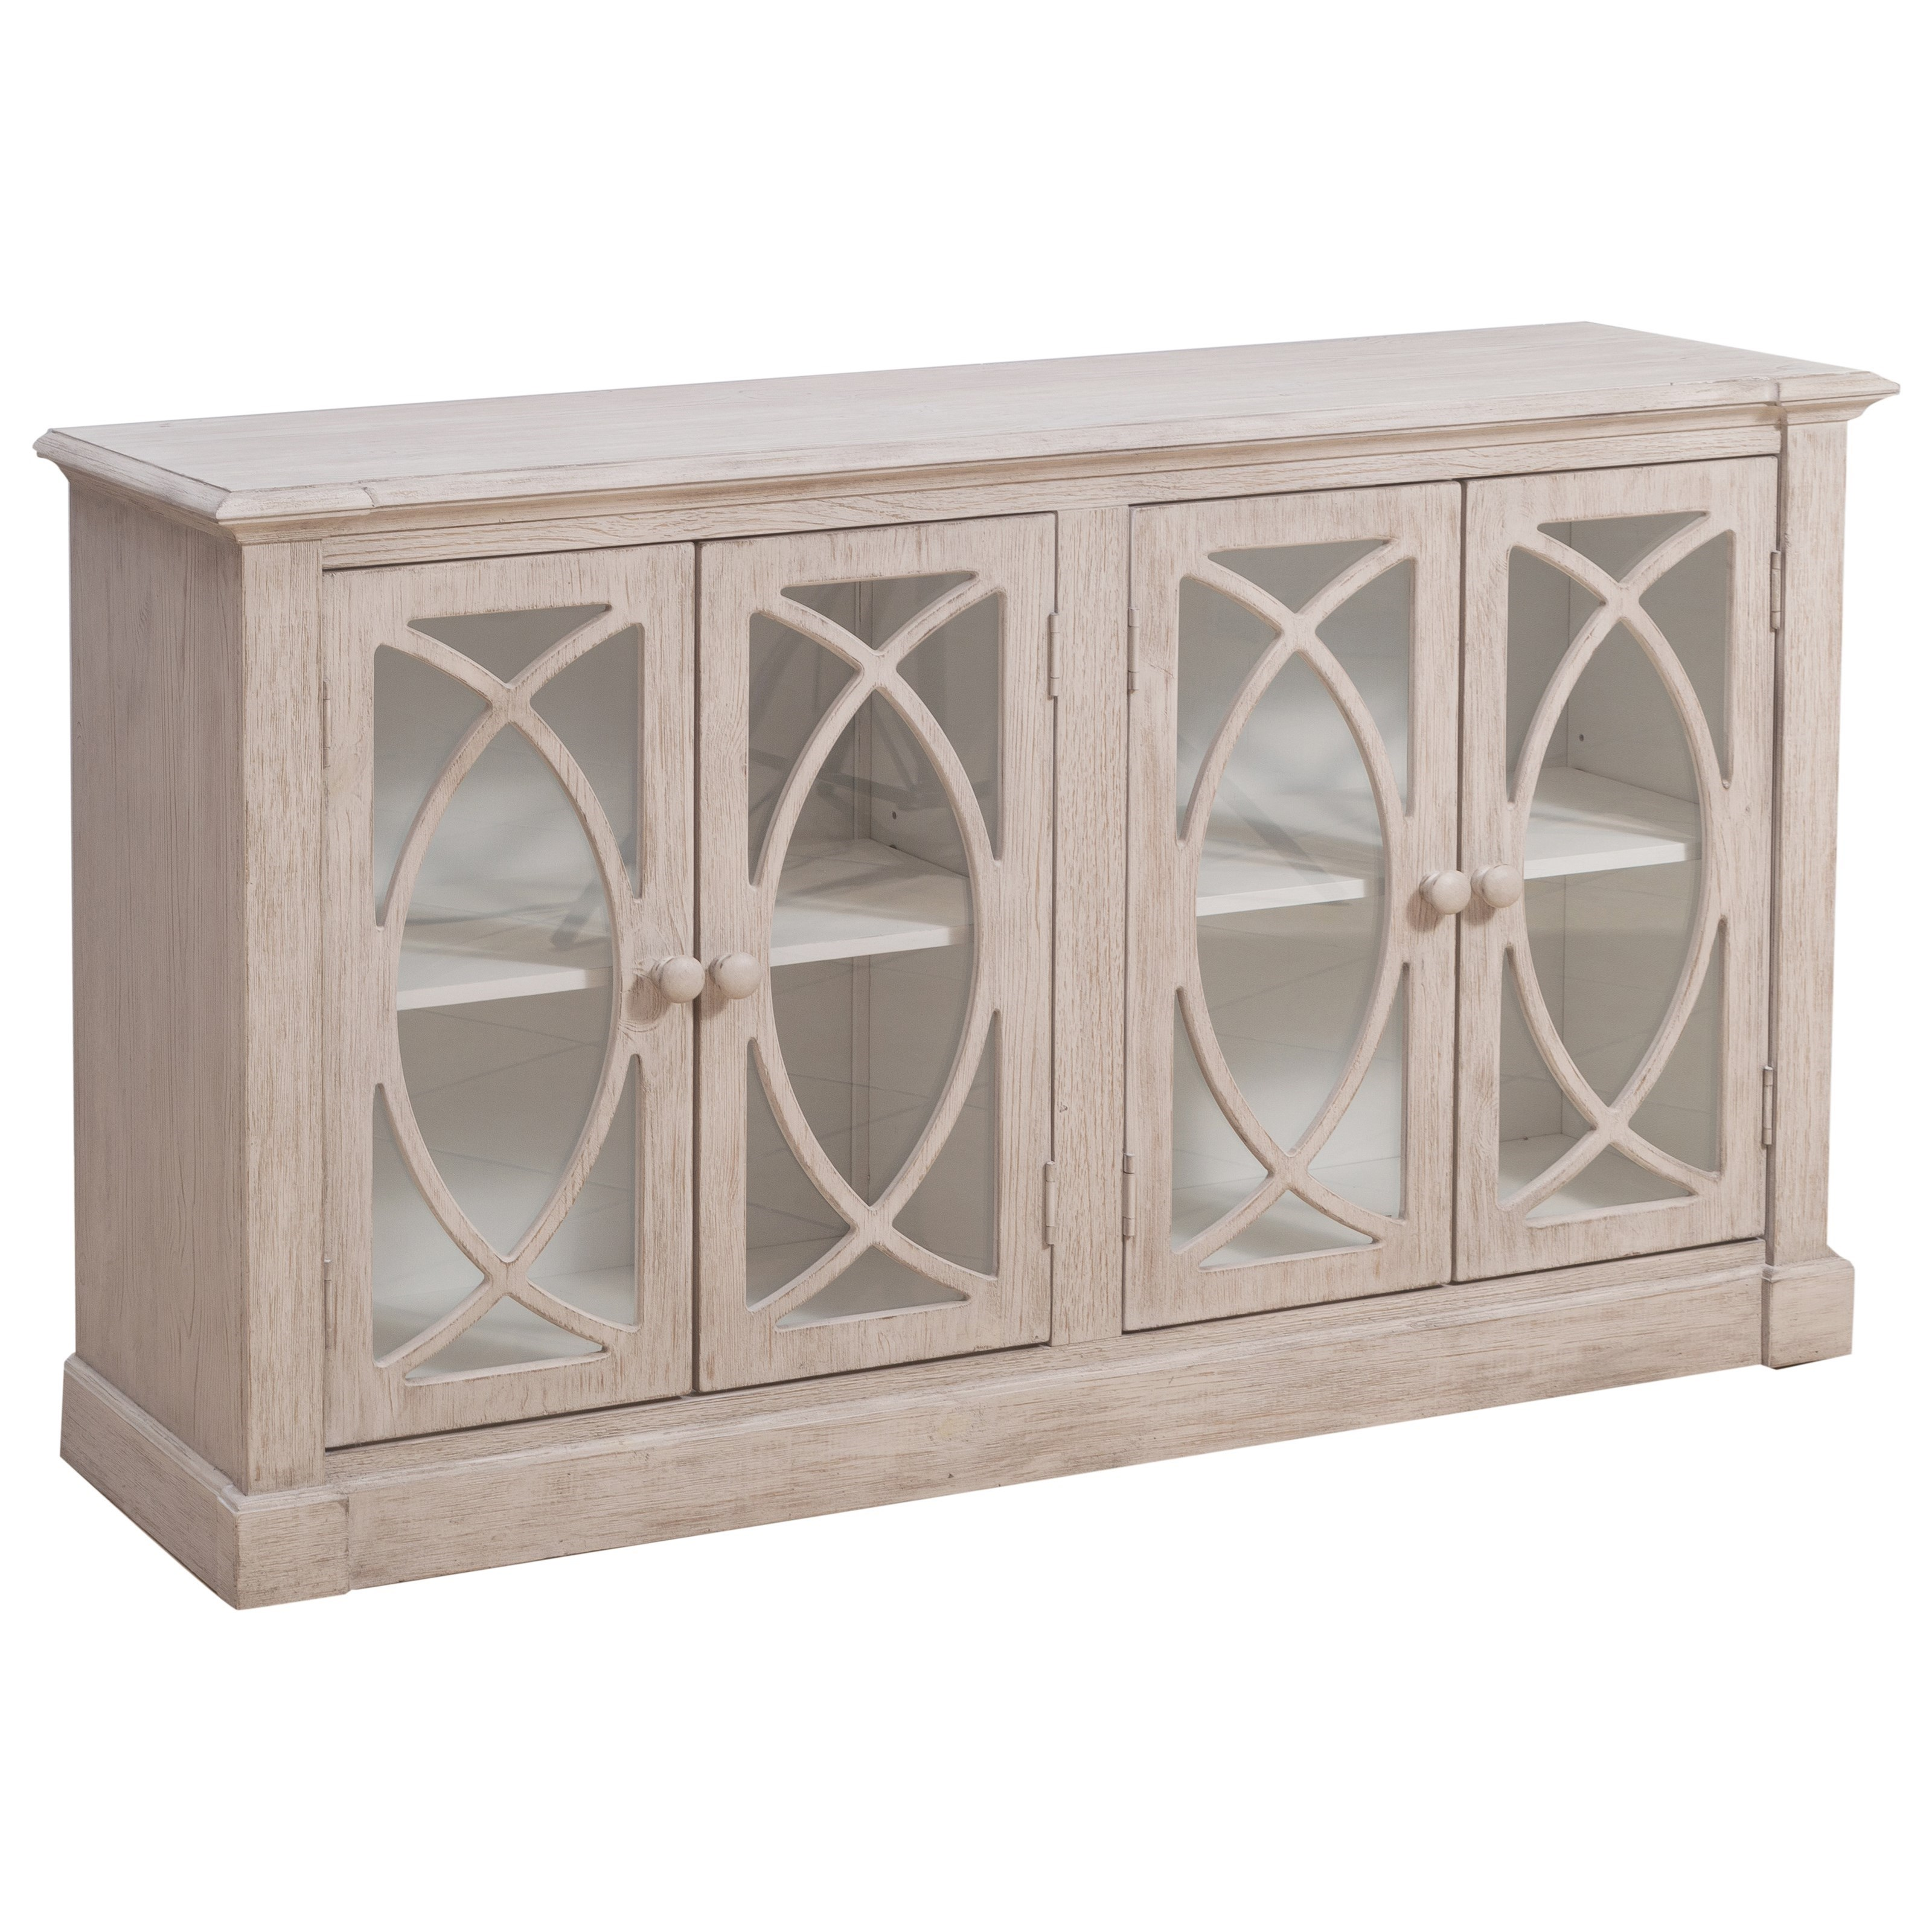 Possibilities - Accent Chests Accent Chest by Klaussner International at Northeast Factory Direct